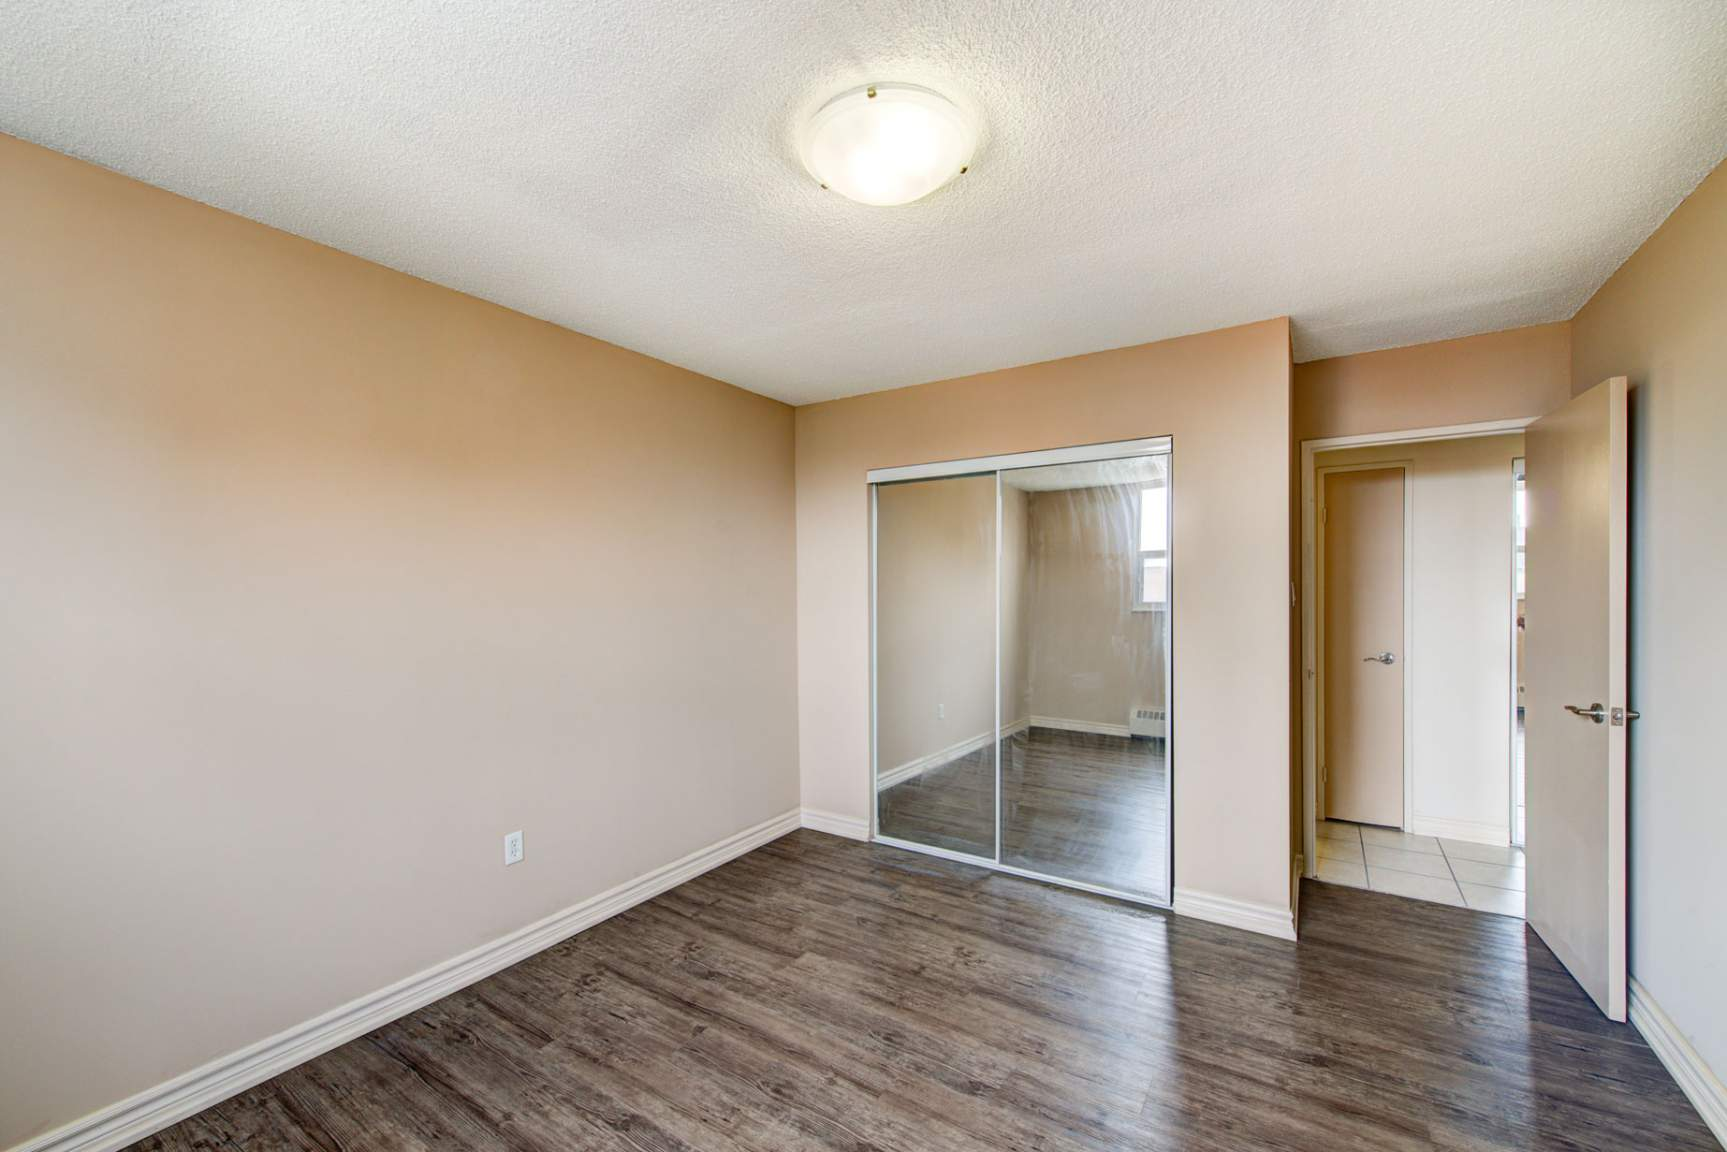 Studio / Bachelor Apartments for rent in Mississauga at Elizabeth Tower - Photo 16 - RentersPages – L401230